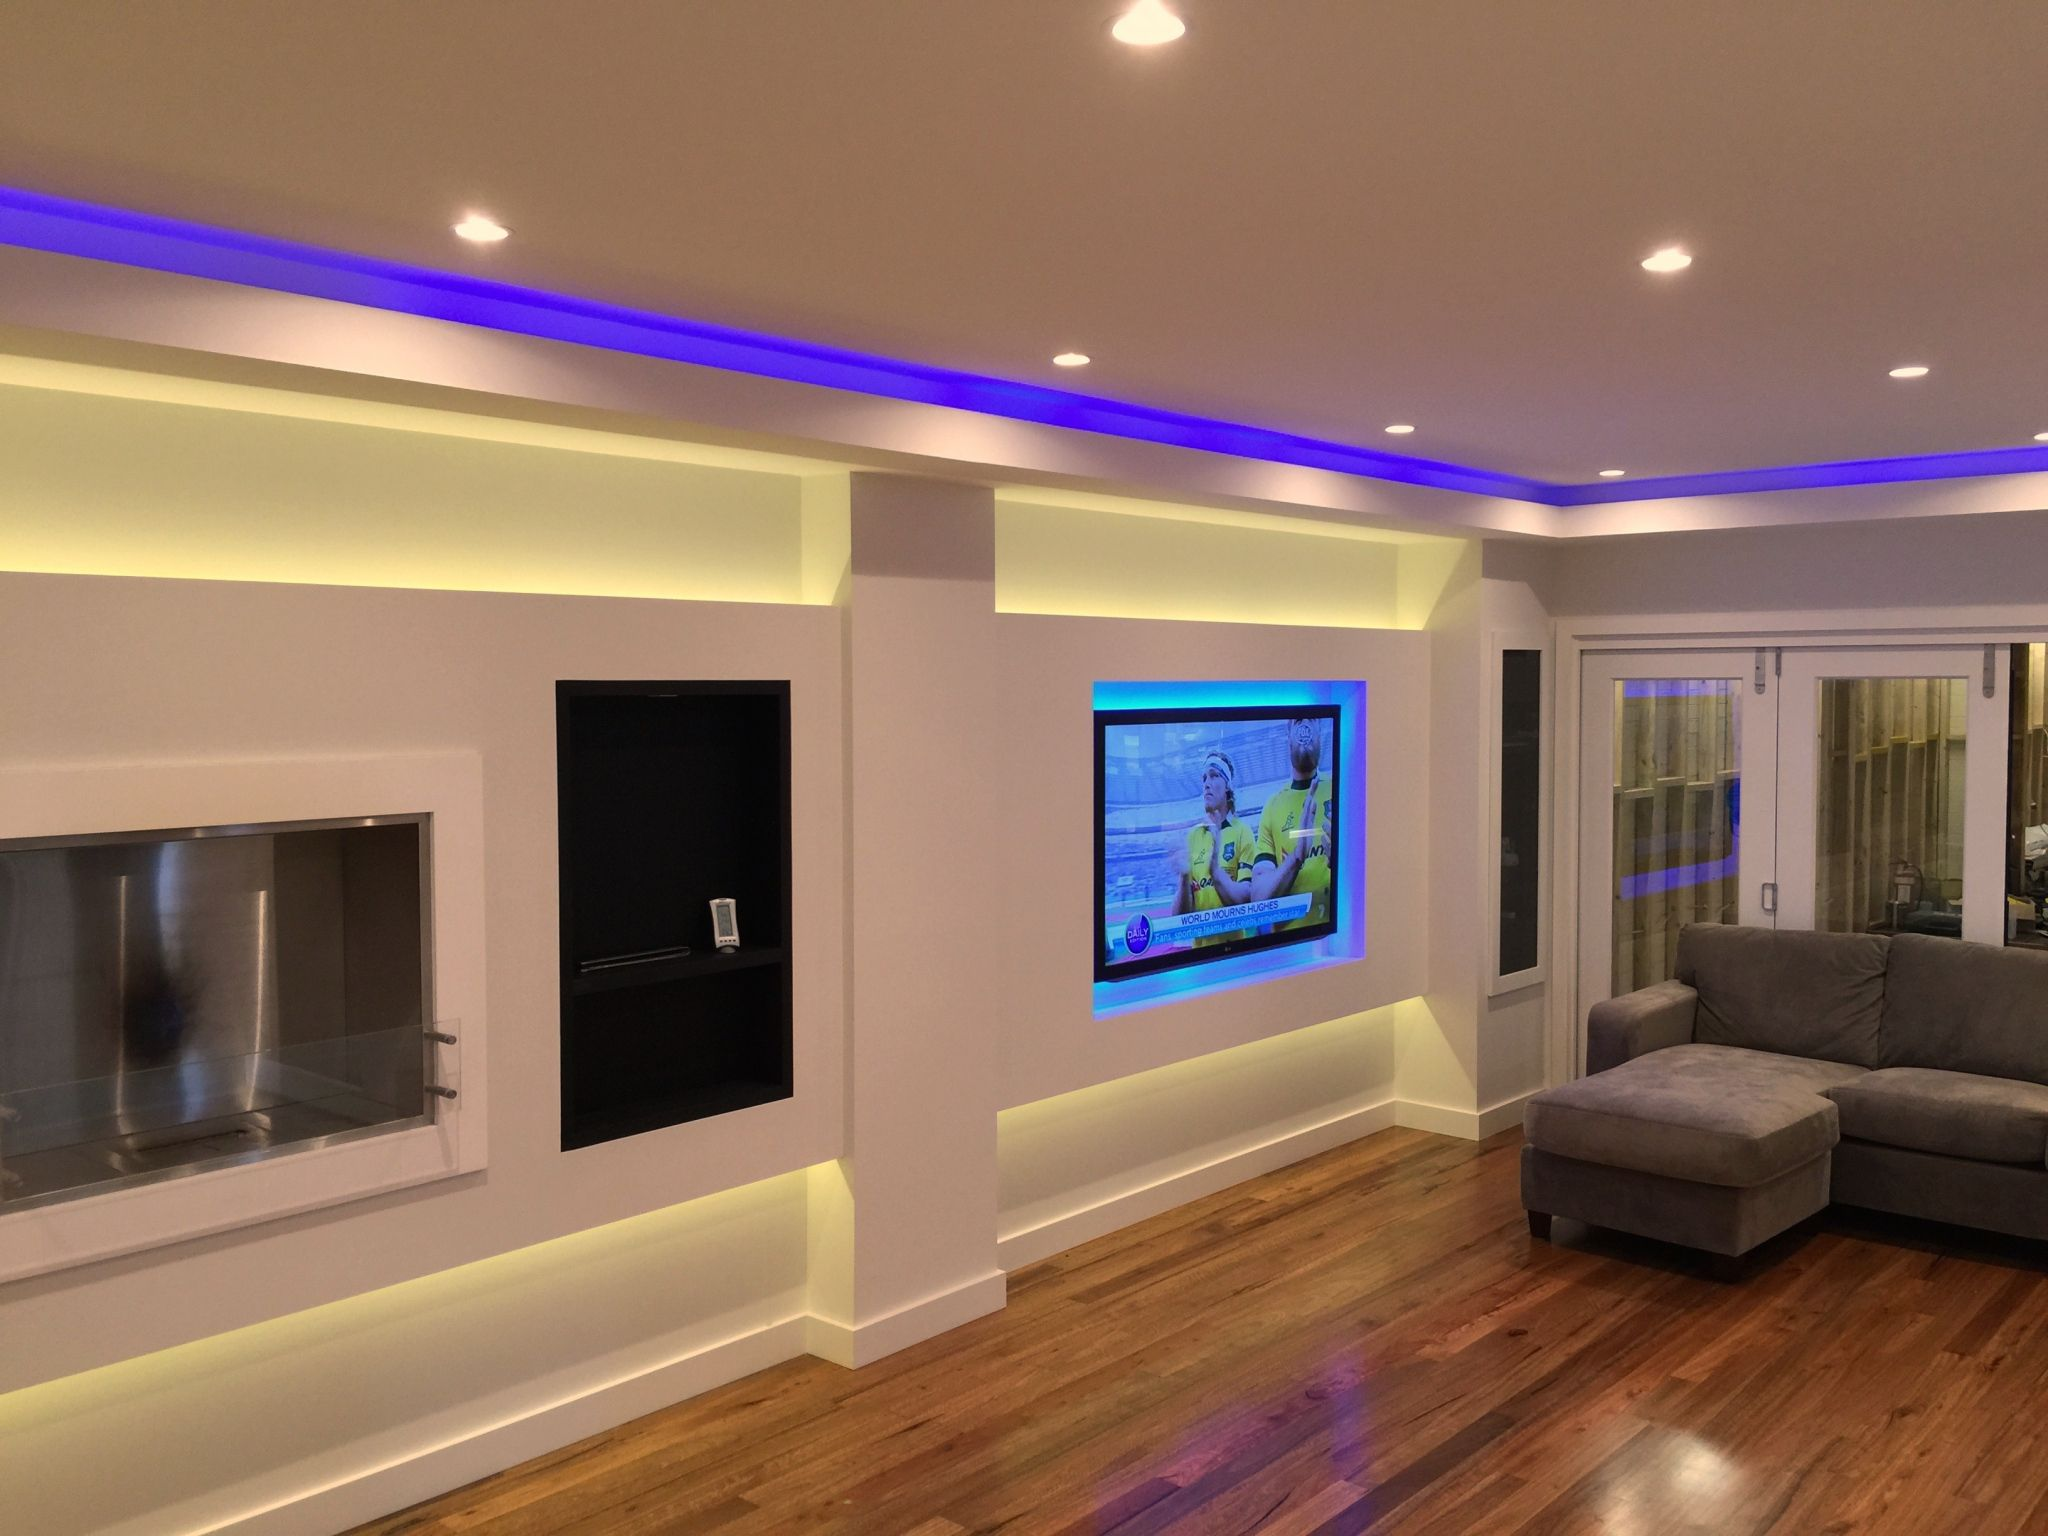 Pin By Khaled Al Diasty On Interior Lighting Light Fittings Living Room Living Room Lighting Paint Colors For Living Room